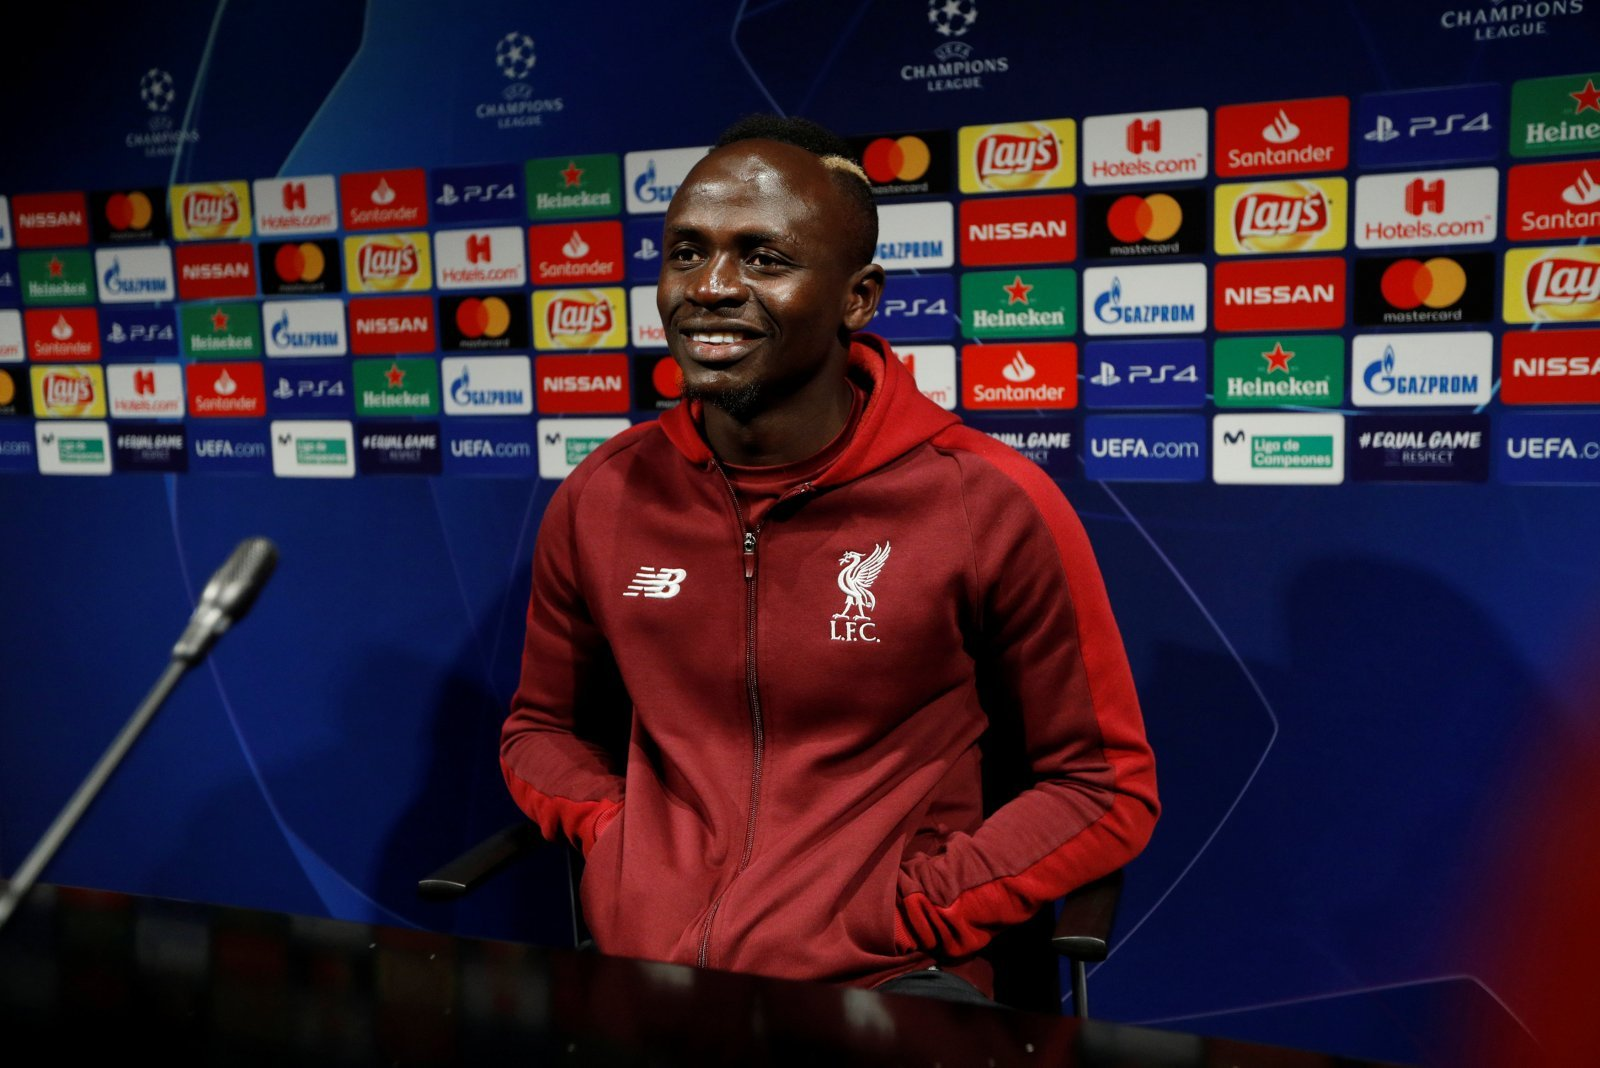 Liverpool: Sadio Mane can make himself a genuine Champions League legend